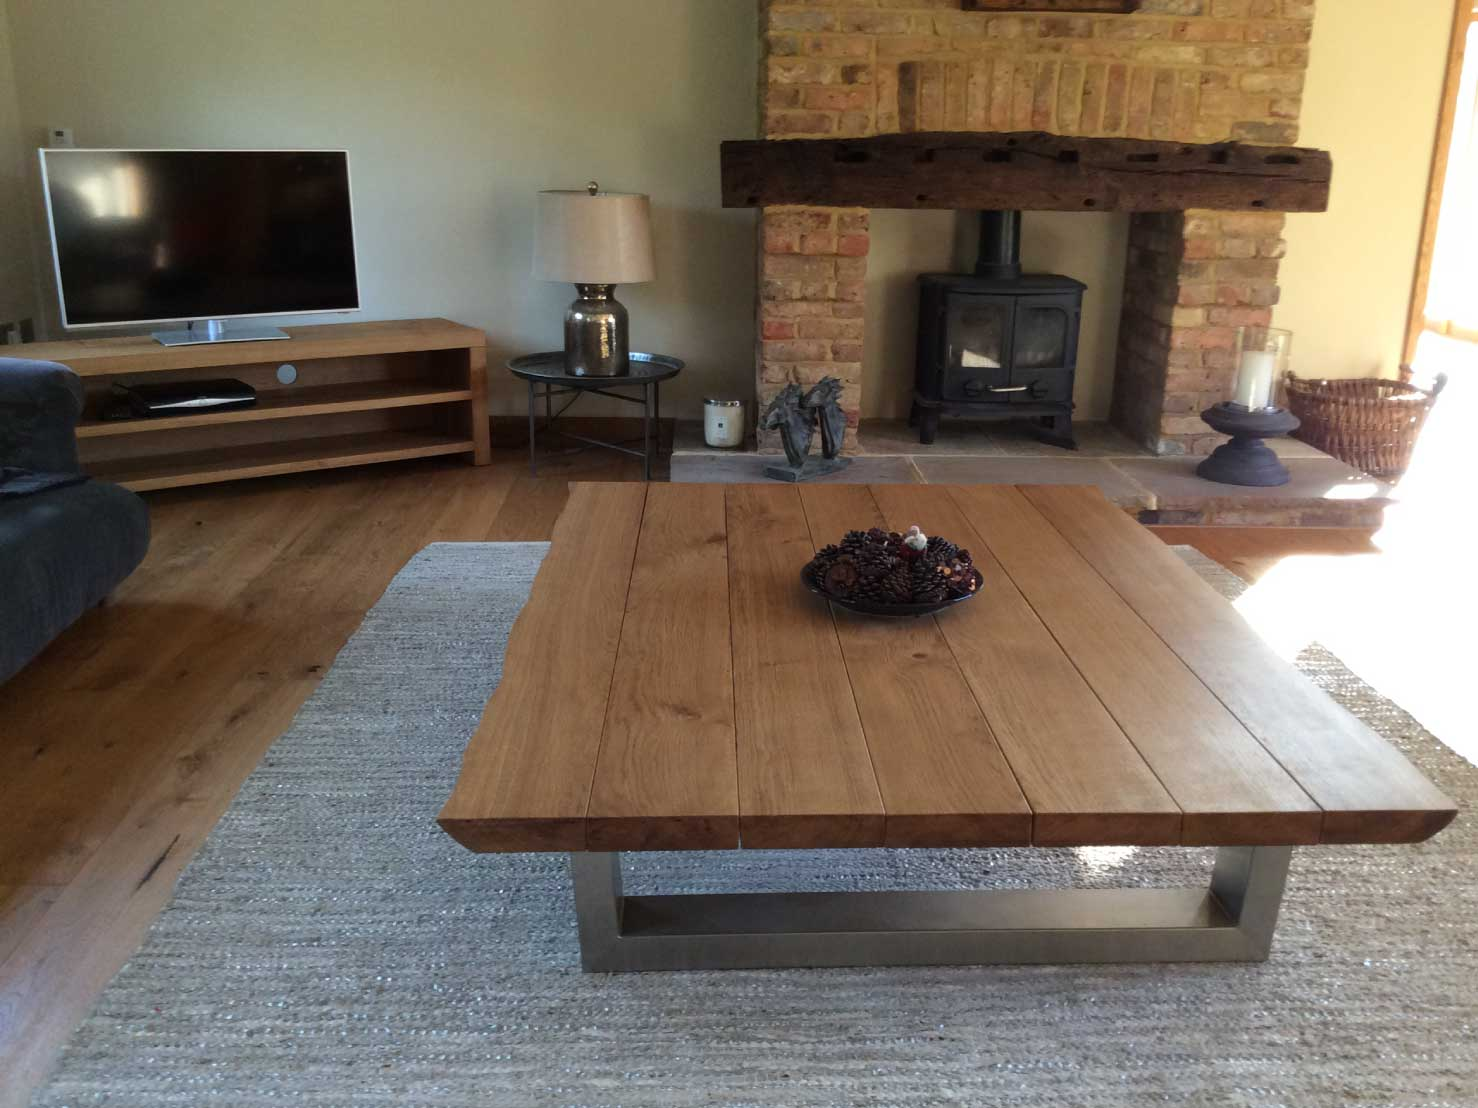 extra-large-coffee-table-from-abacus-tables-komodo-live-edge-oak-1.8m-project-364-v1